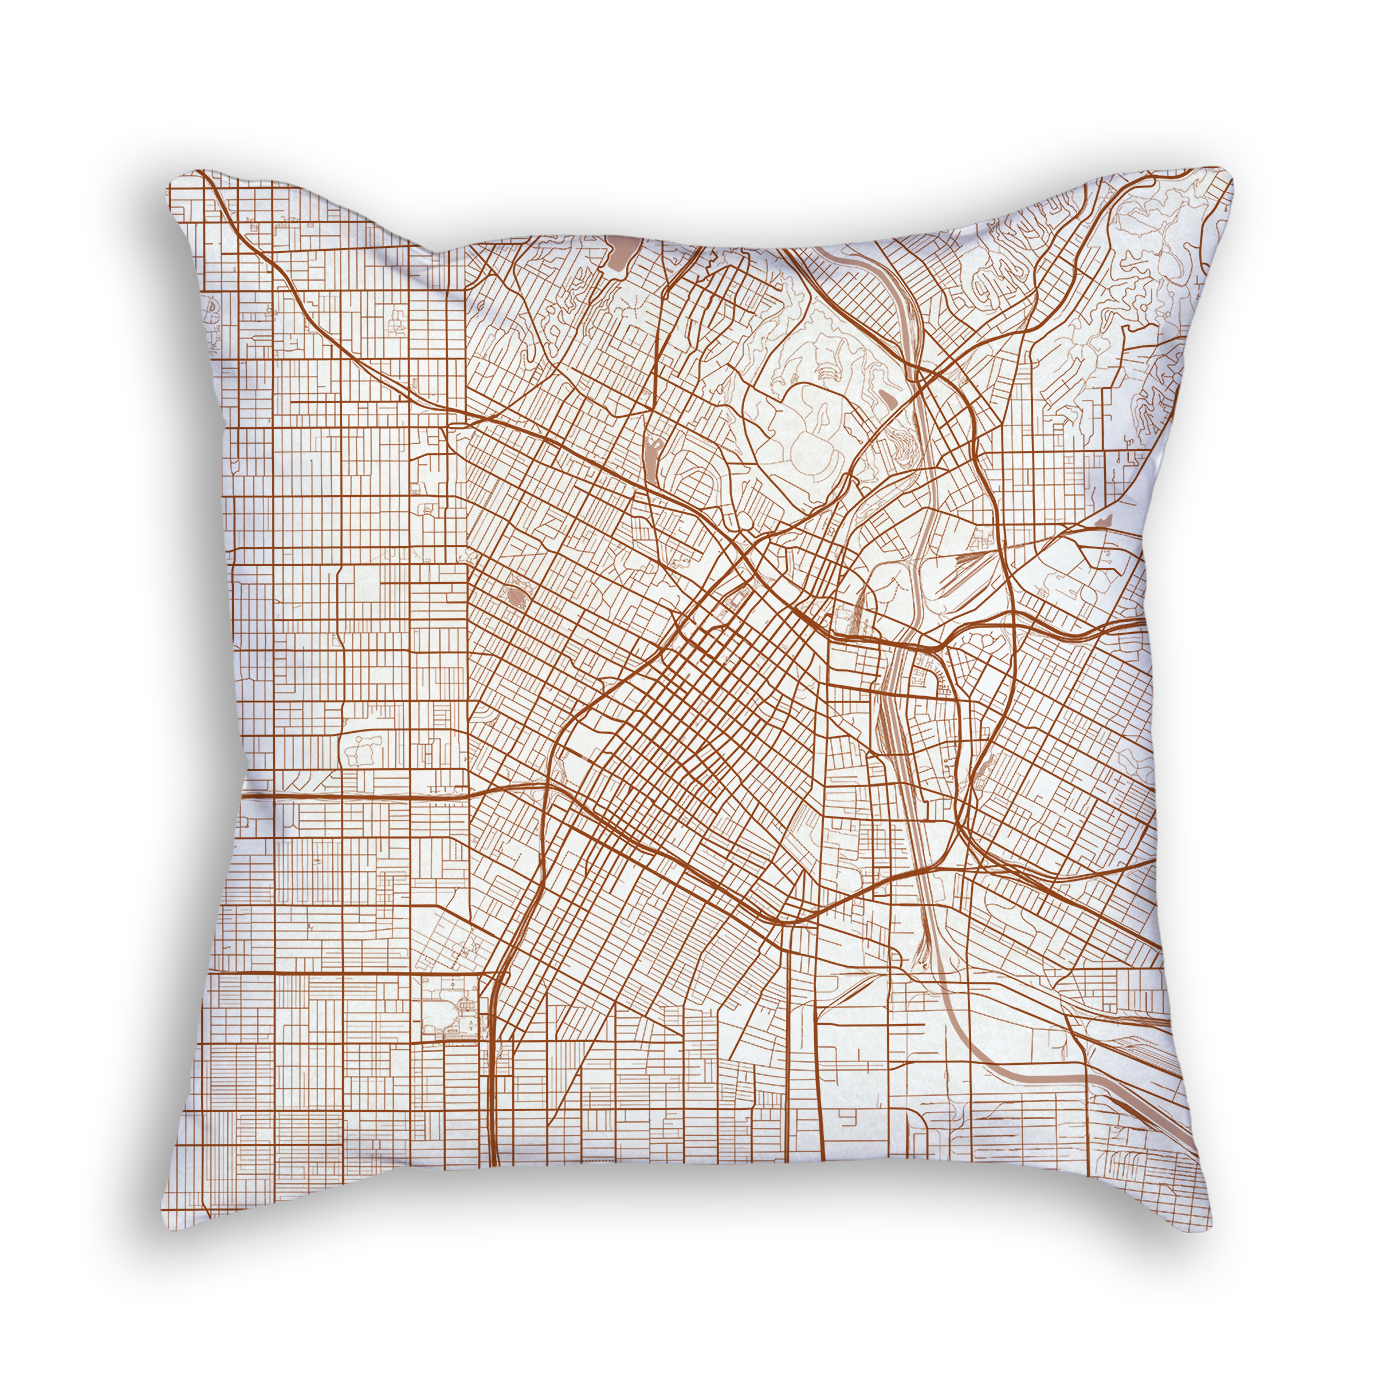 Los Angeles CA City Map Art Decorative Throw Pillow